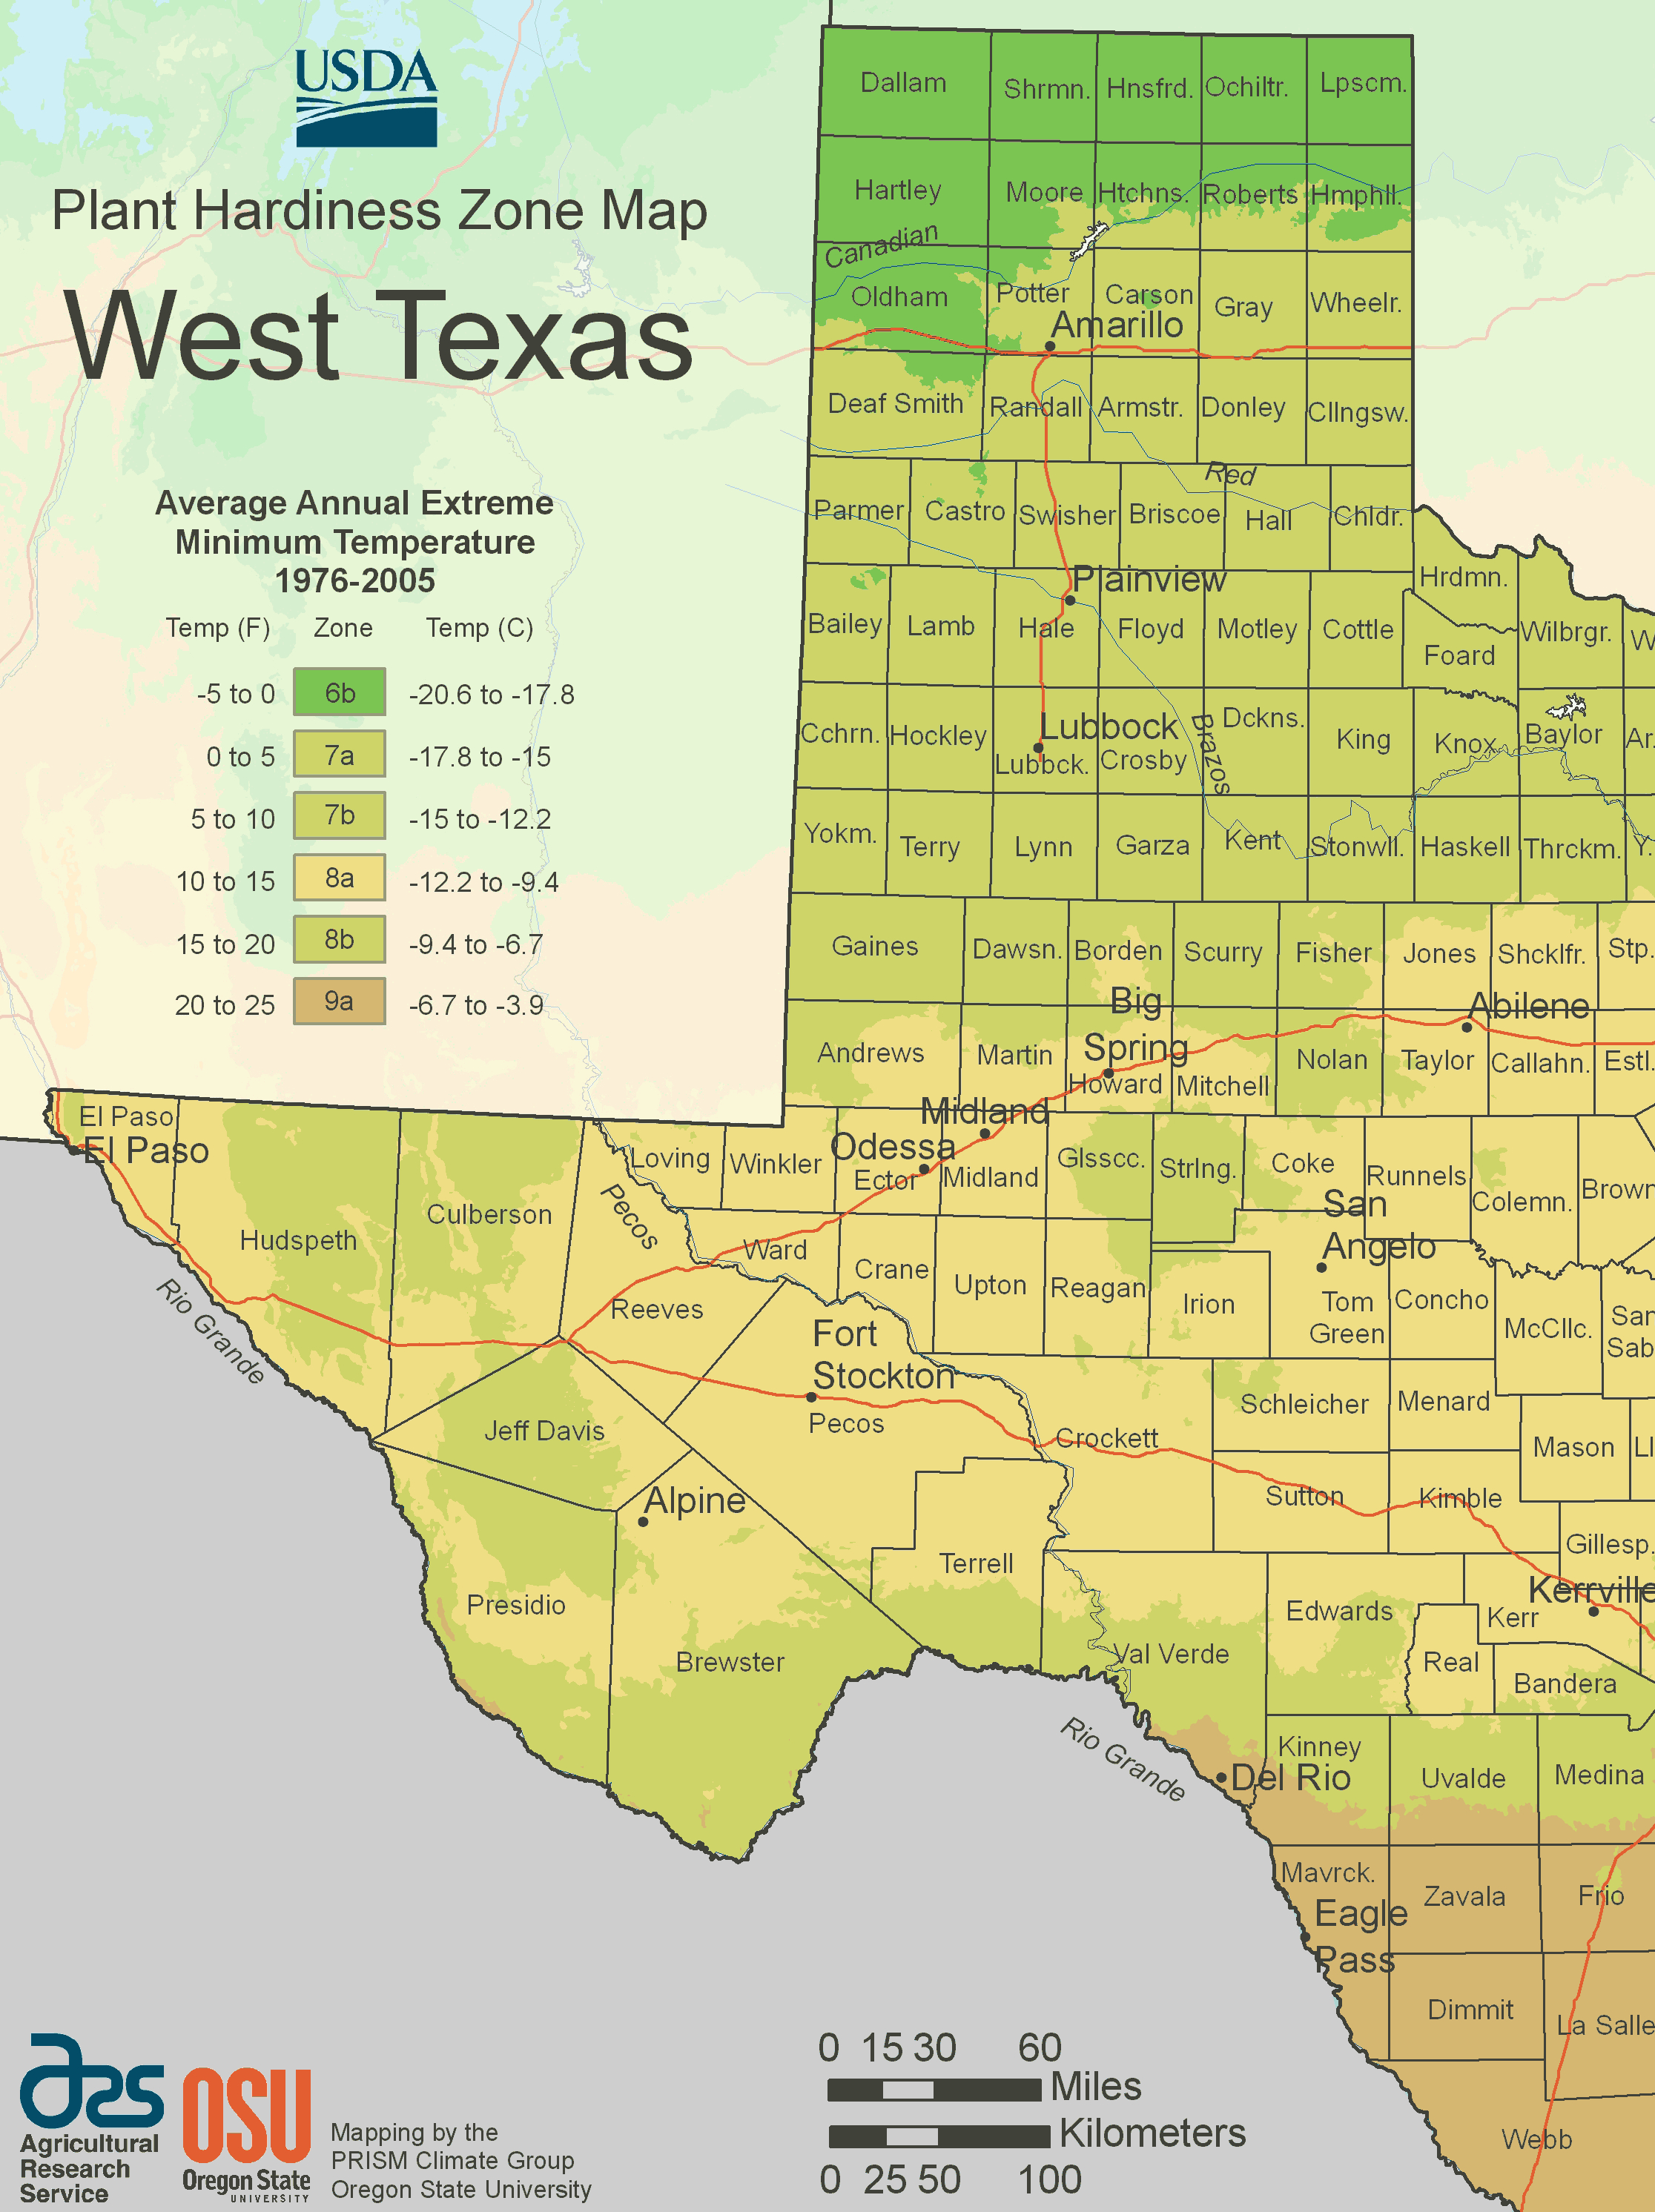 Texas Maps Images And Travel Information | Download Free Texas Maps - Travel Texas Map